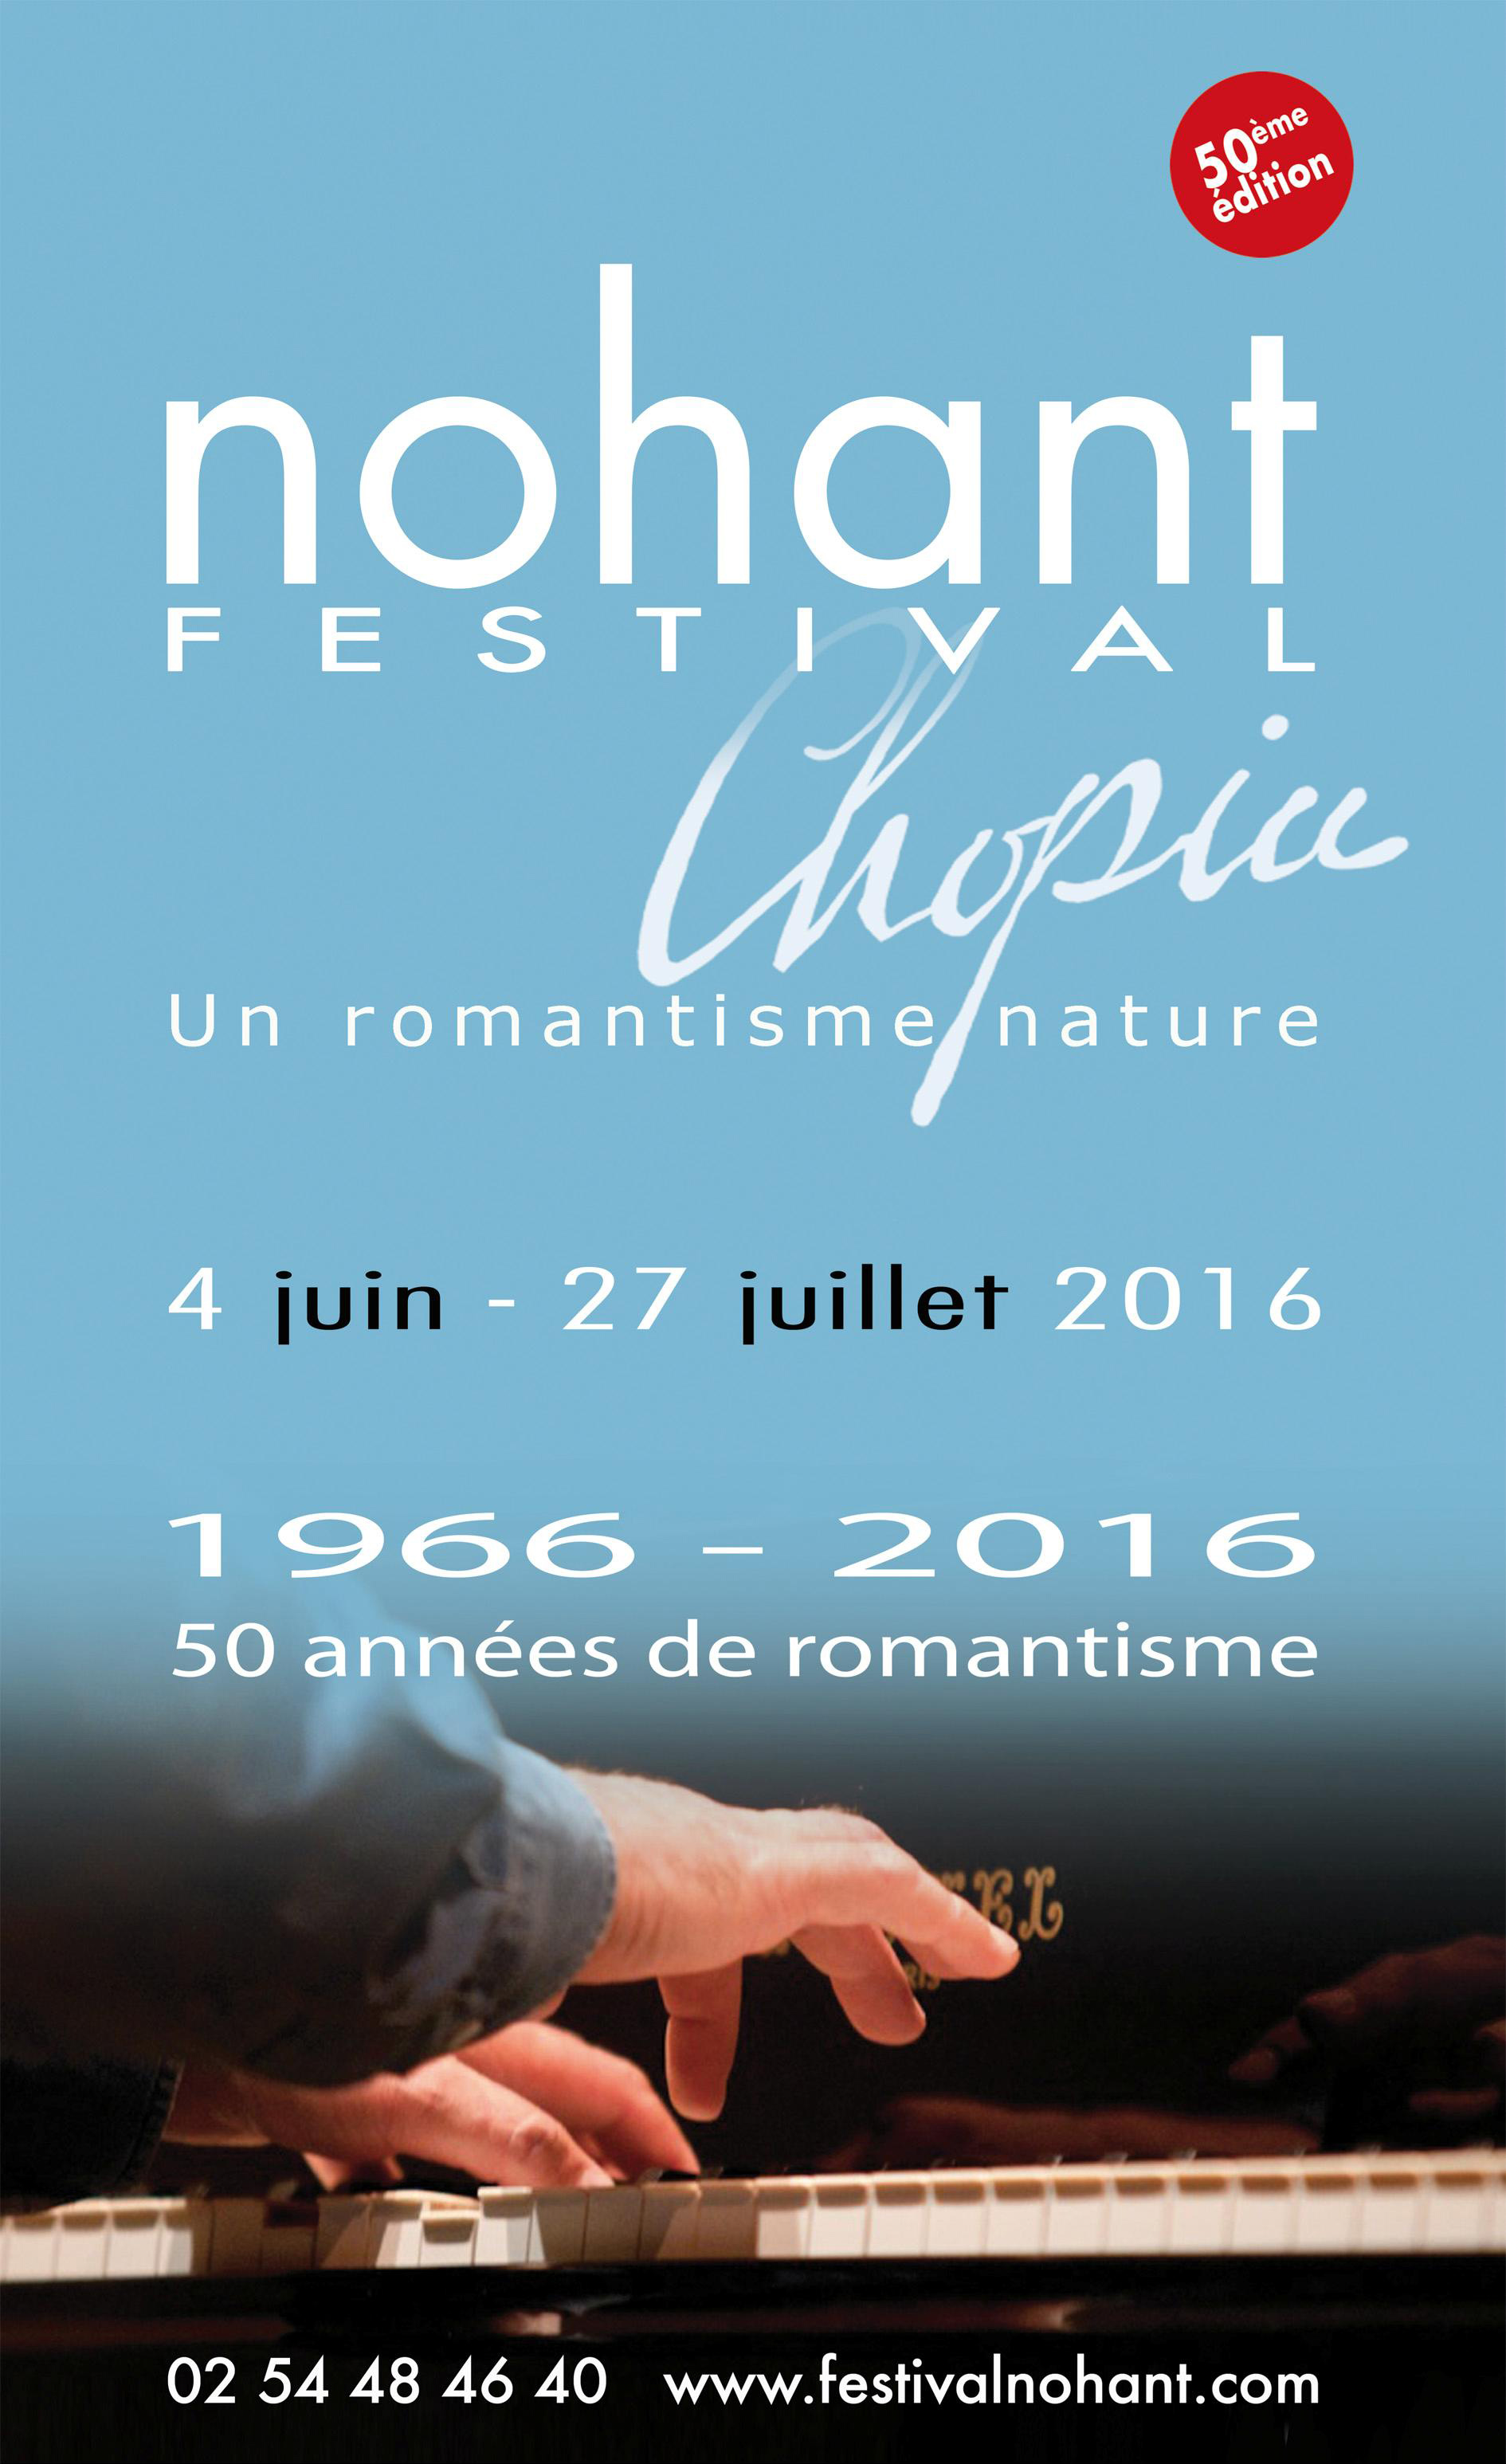 Affiche - Nohant Festival Chopin_final